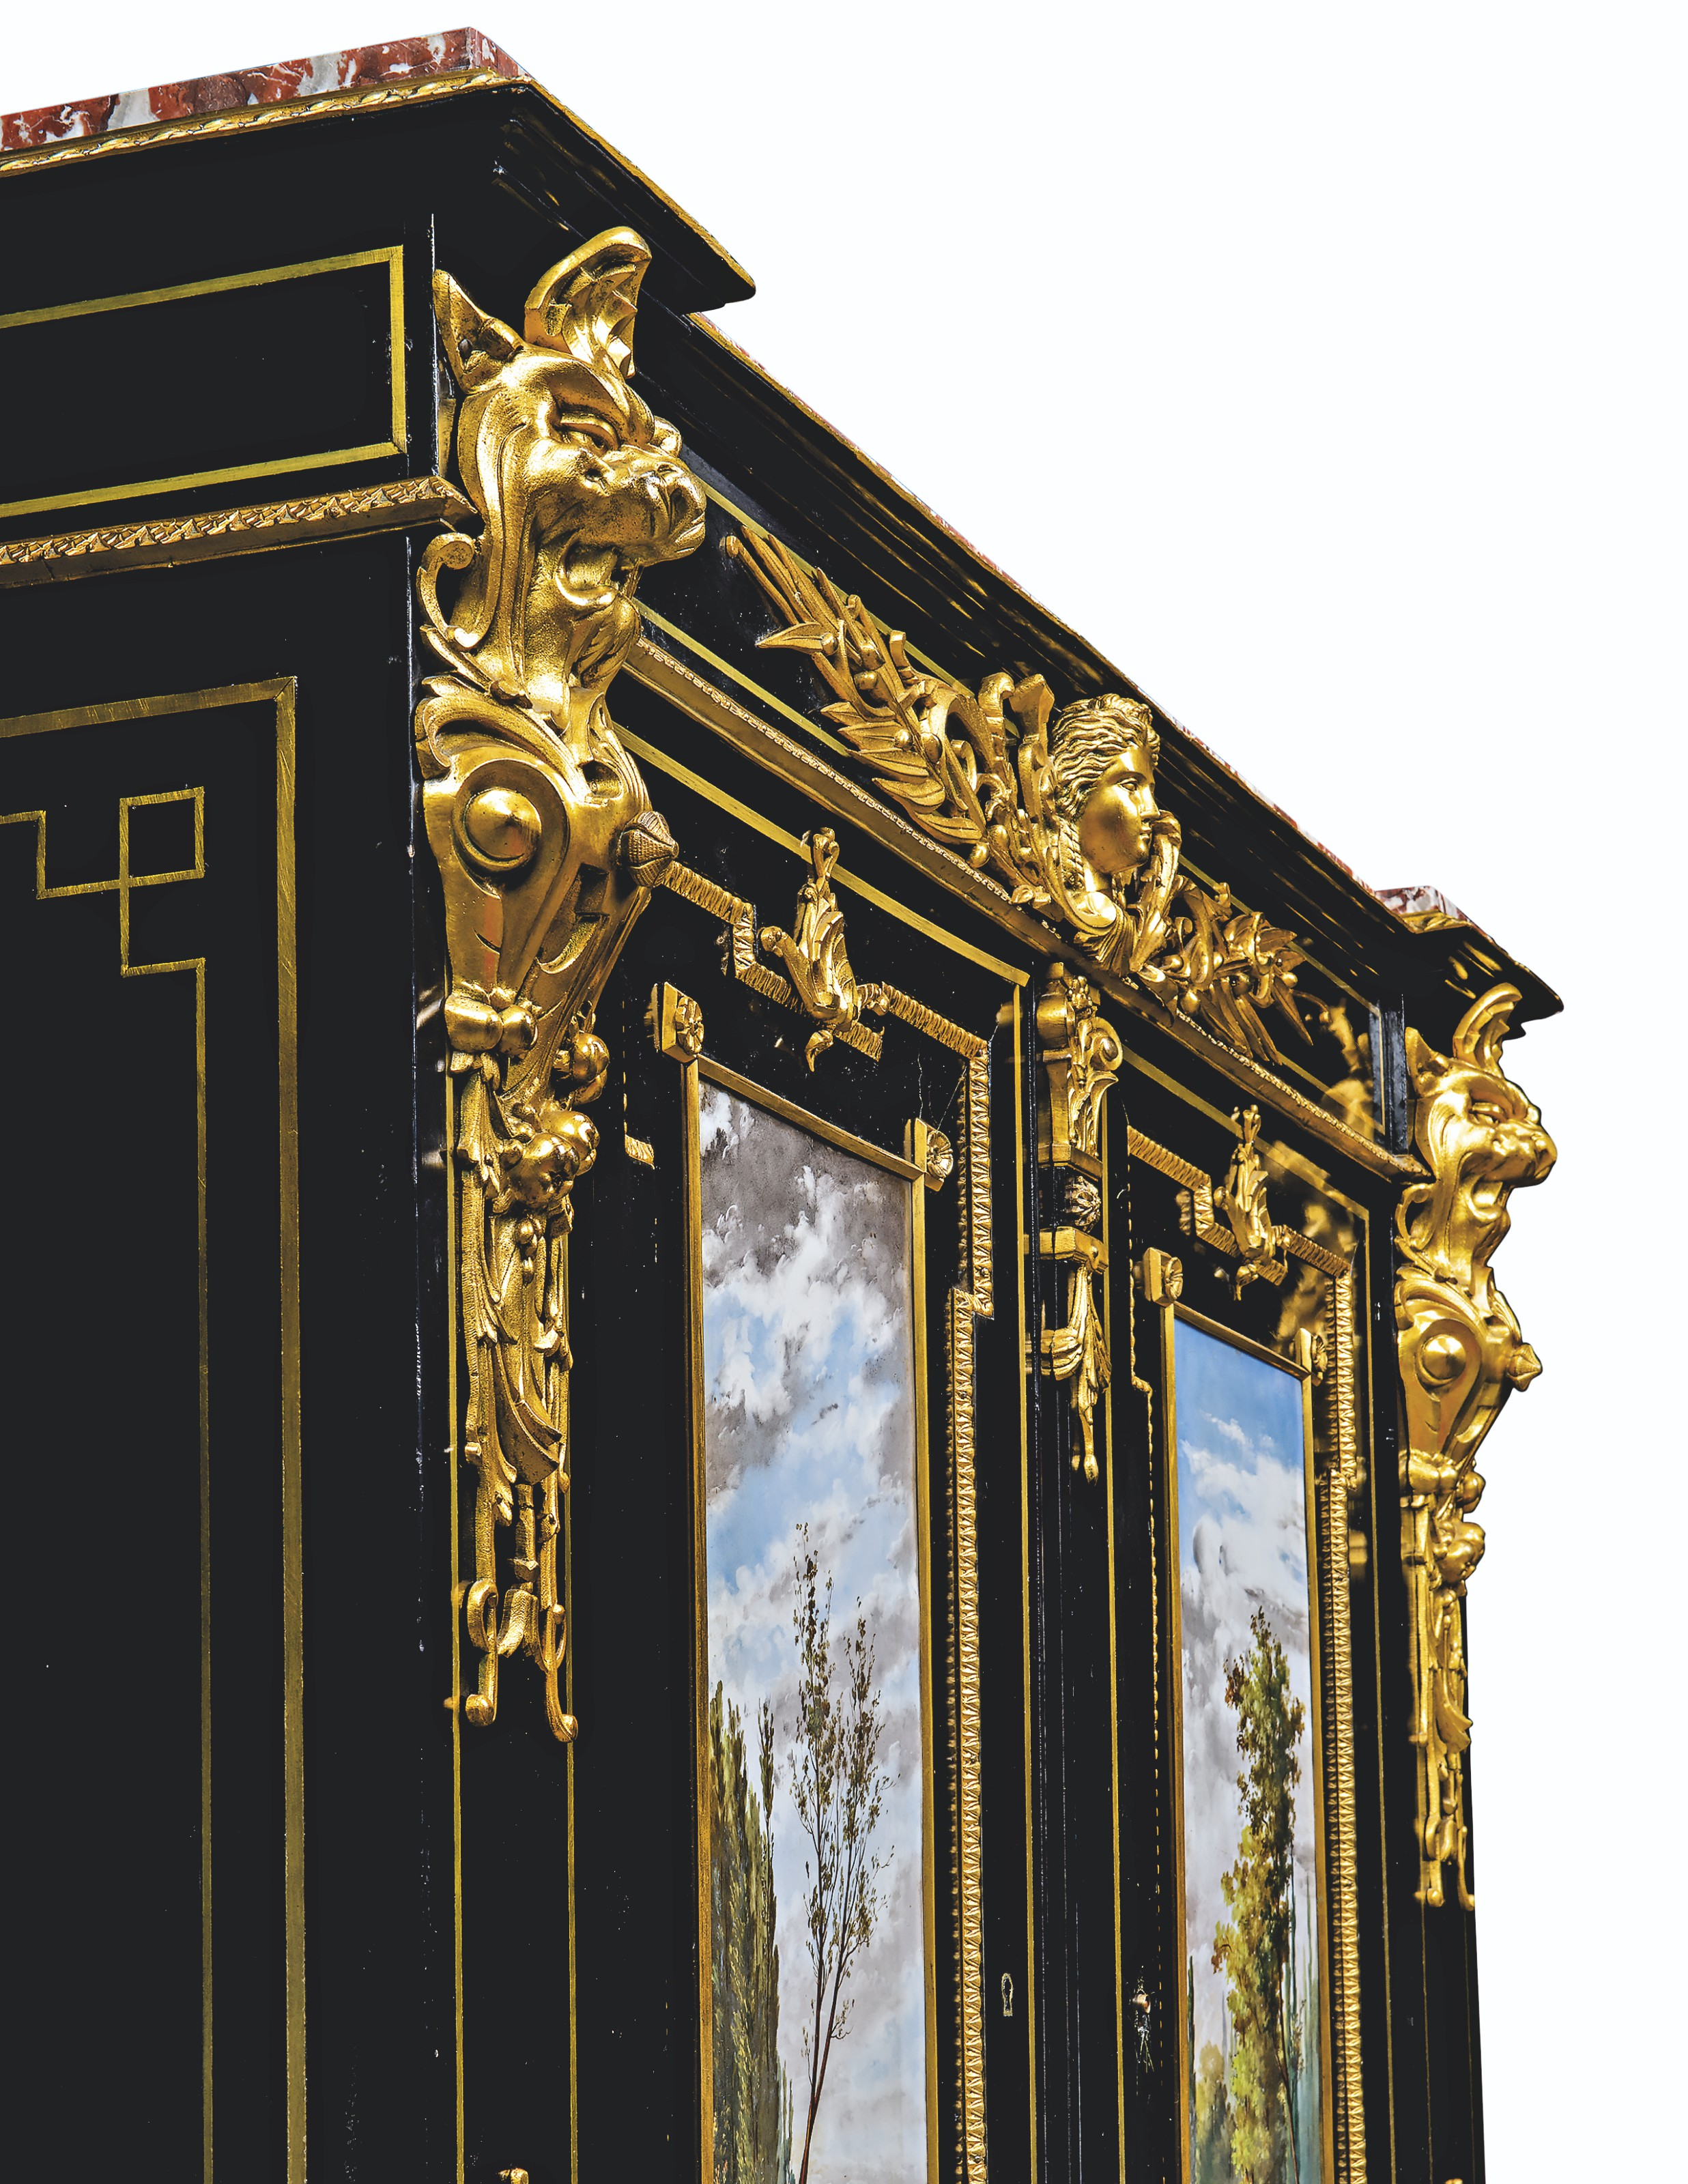 A NAPOLEON III GILT ELECTROTYPE-MOUNTED AND PORCELAIN-INSET EBONY AND EBONISED MEUBLE D'APPUI